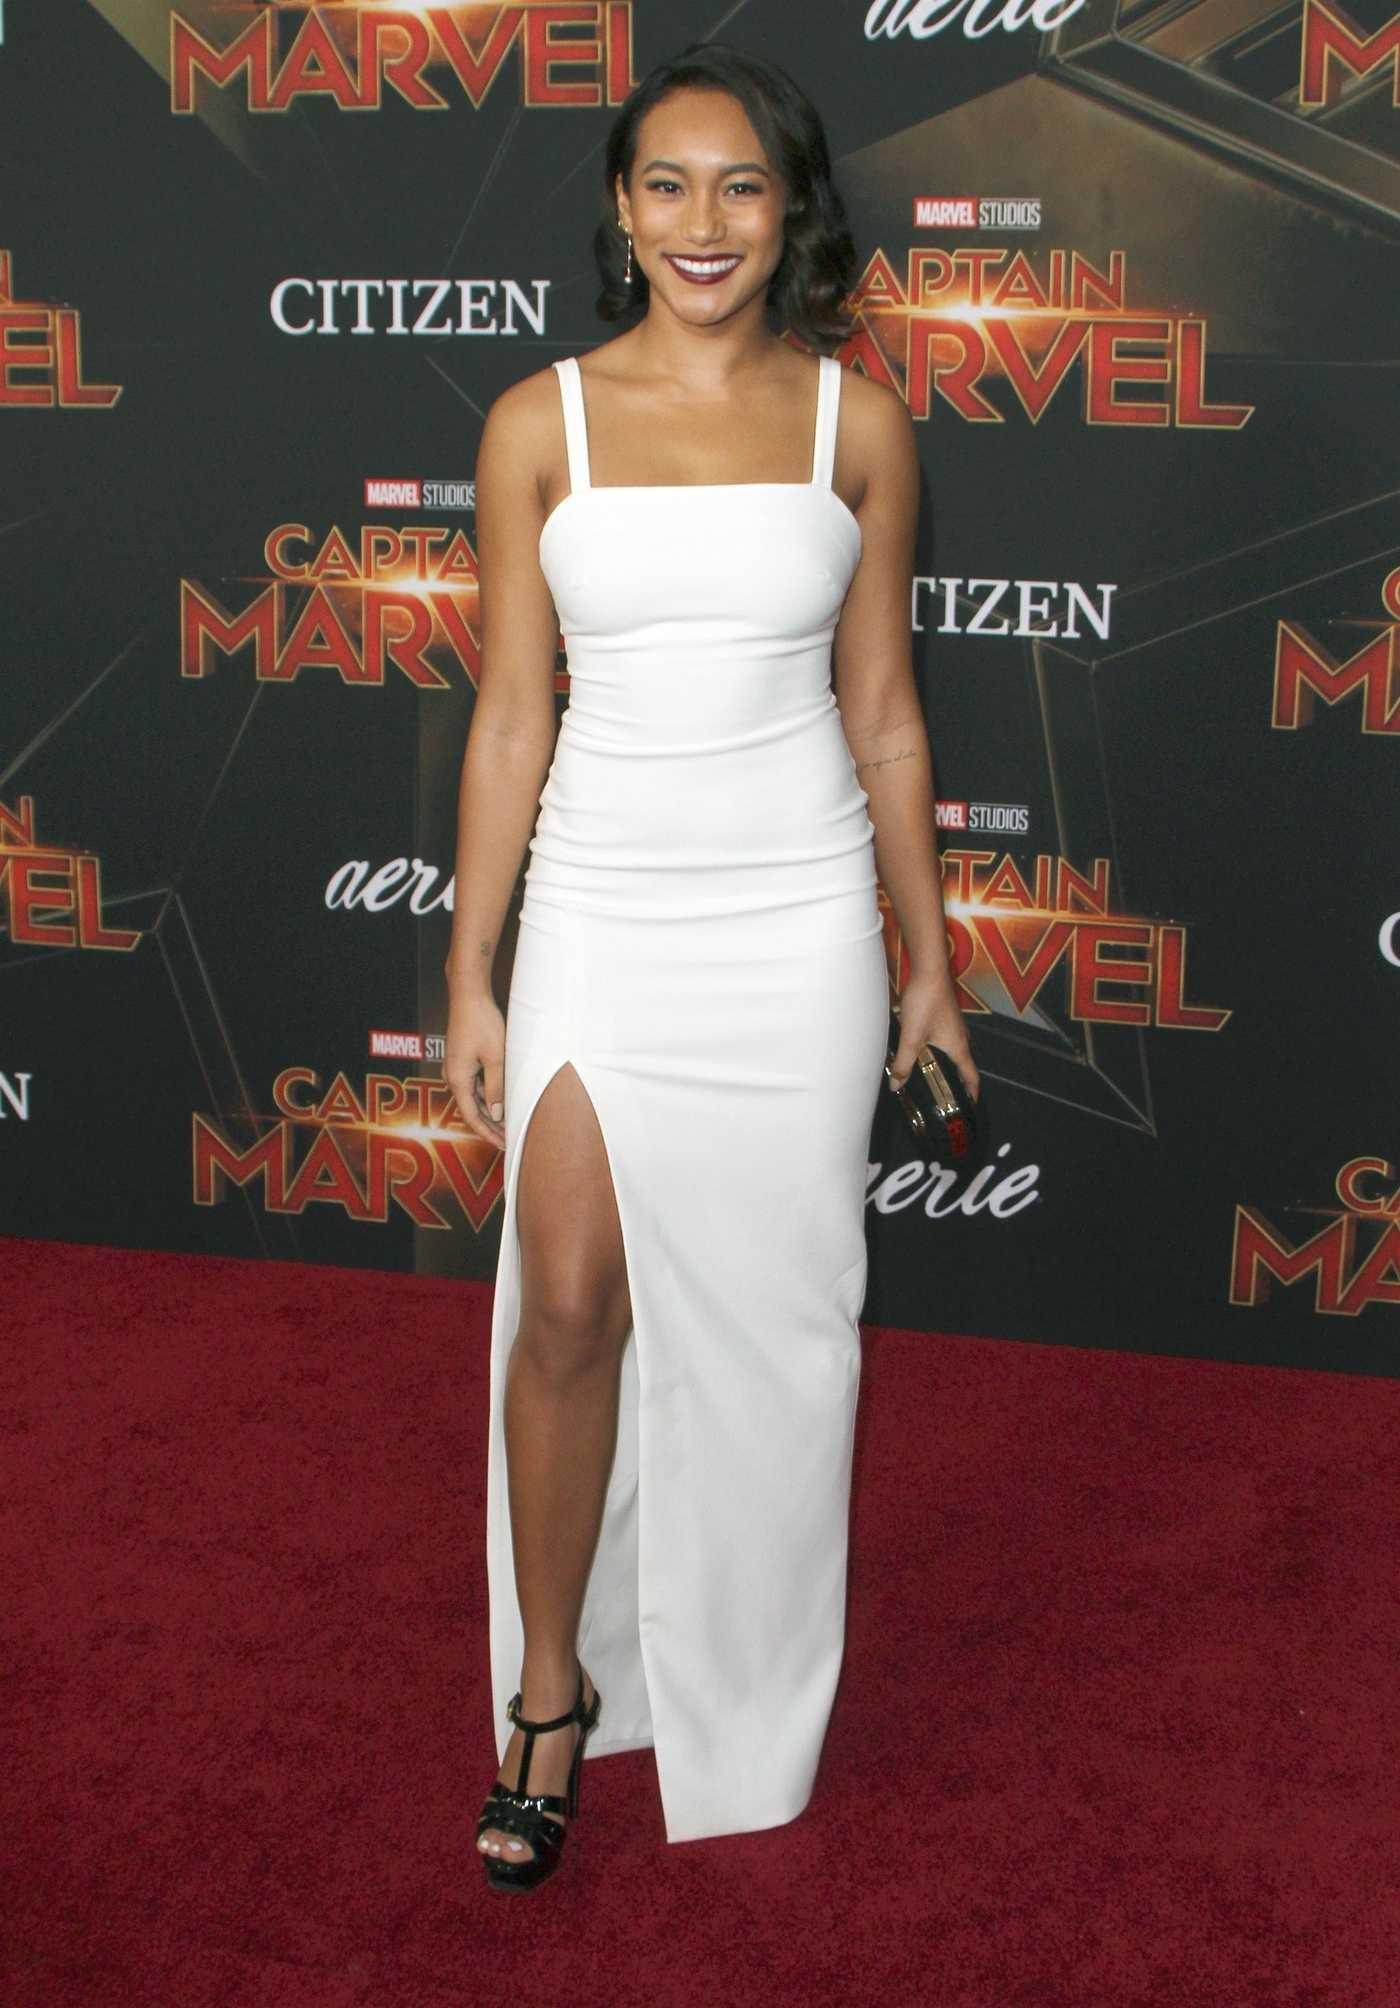 Sydney Park Attends the Captain Marvel Premiere at the El Capitan Theatre in Los Angeles 03/04/2019